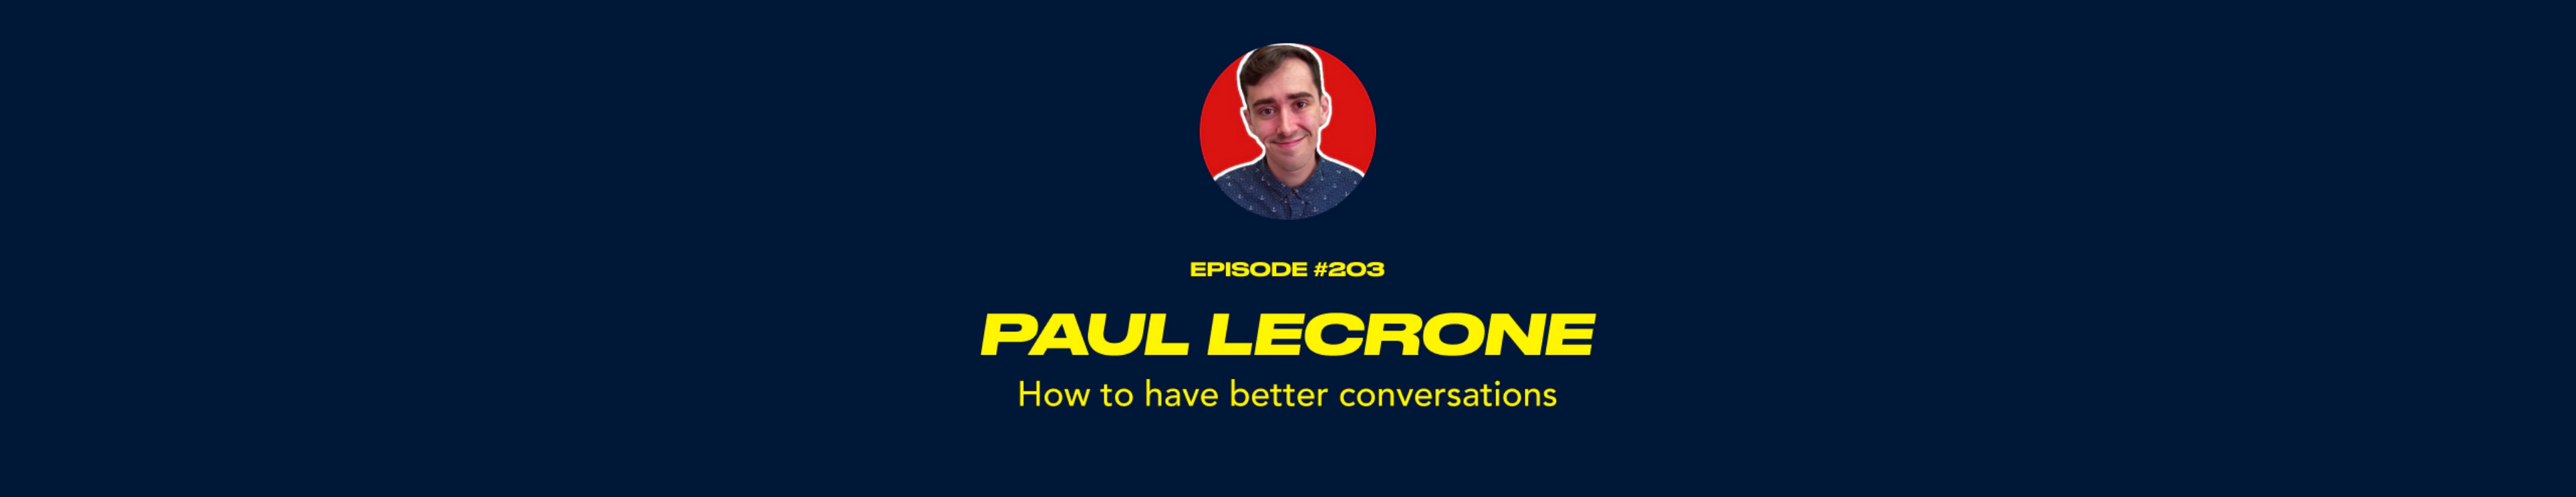 Paul LeCrone - How to have better conversations